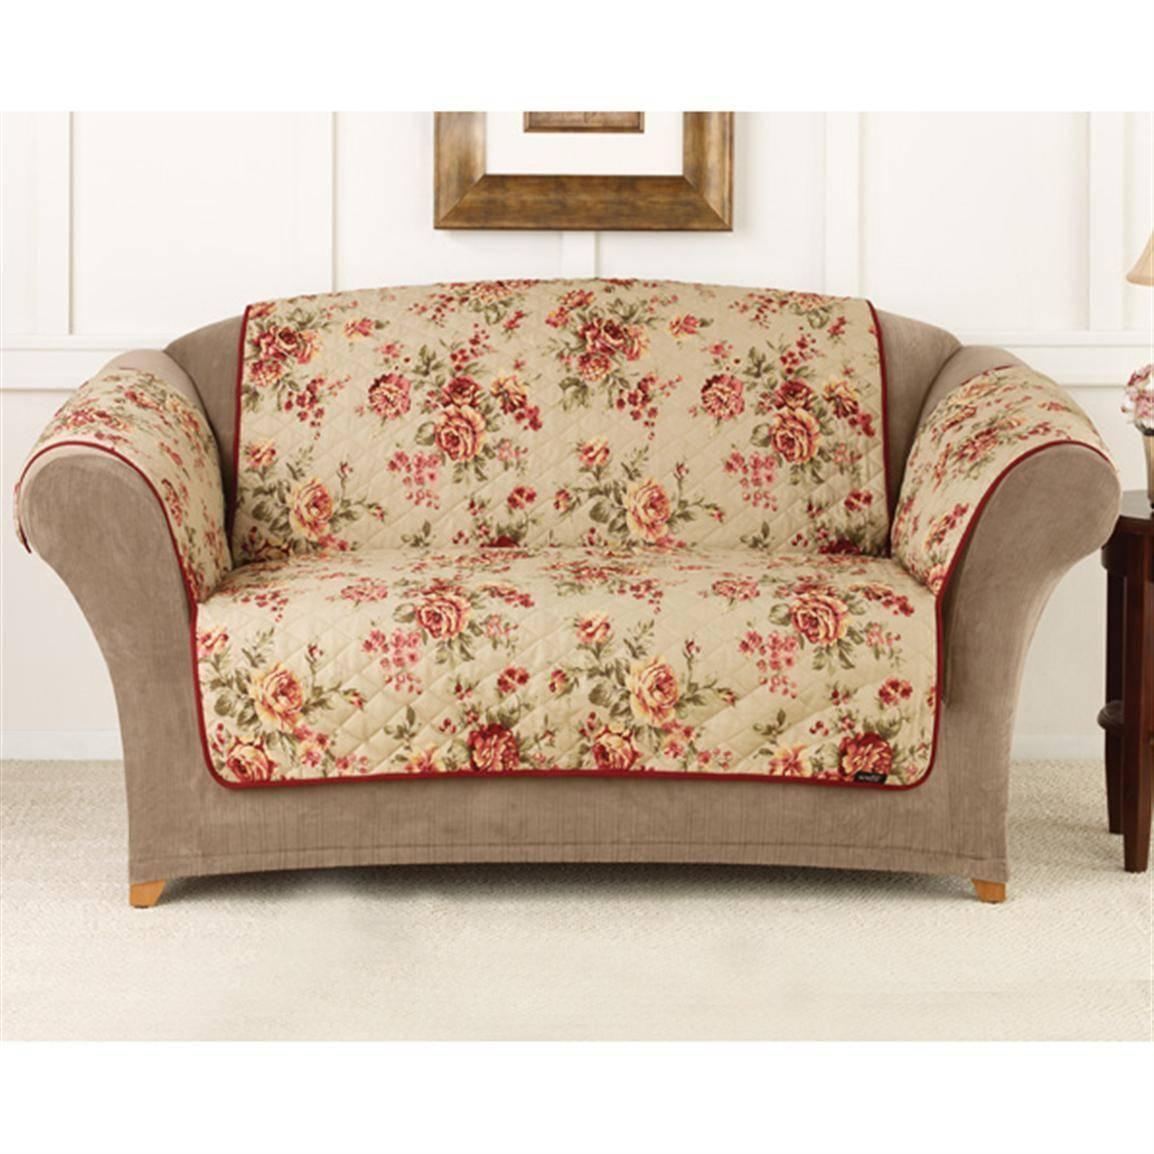 Sure Fit® Lexington Floral Sofa Pet Cover - 292857, Furniture intended for Floral Sofa Slipcovers (Image 13 of 15)